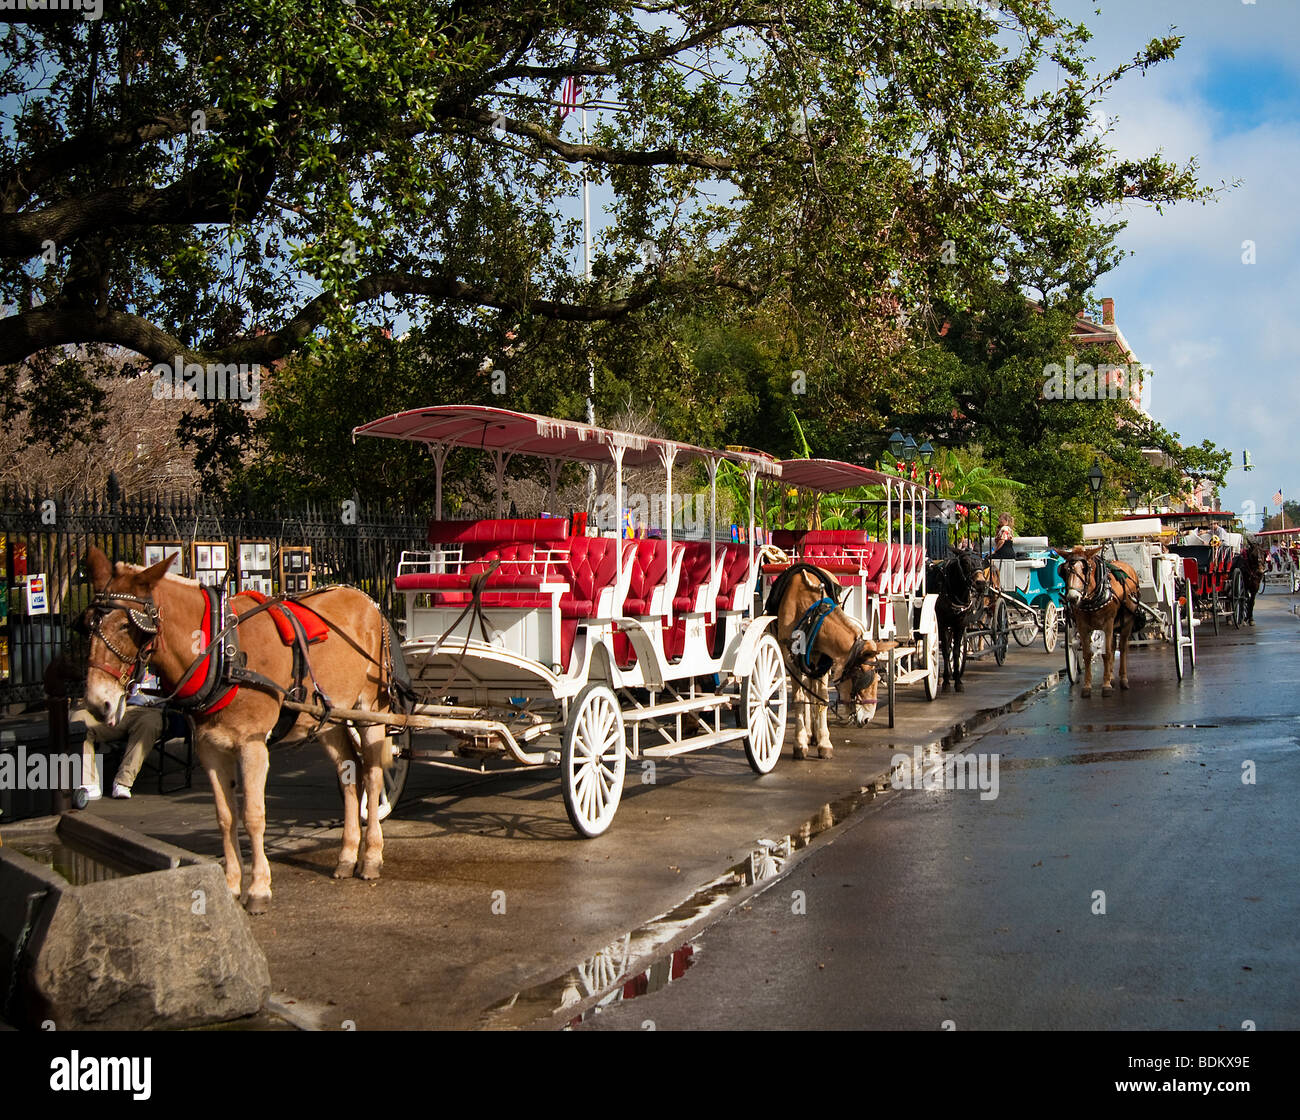 Siteseeing horse drawn carriages on Jackson Square in New Orleans, Louisiana - Stock Image